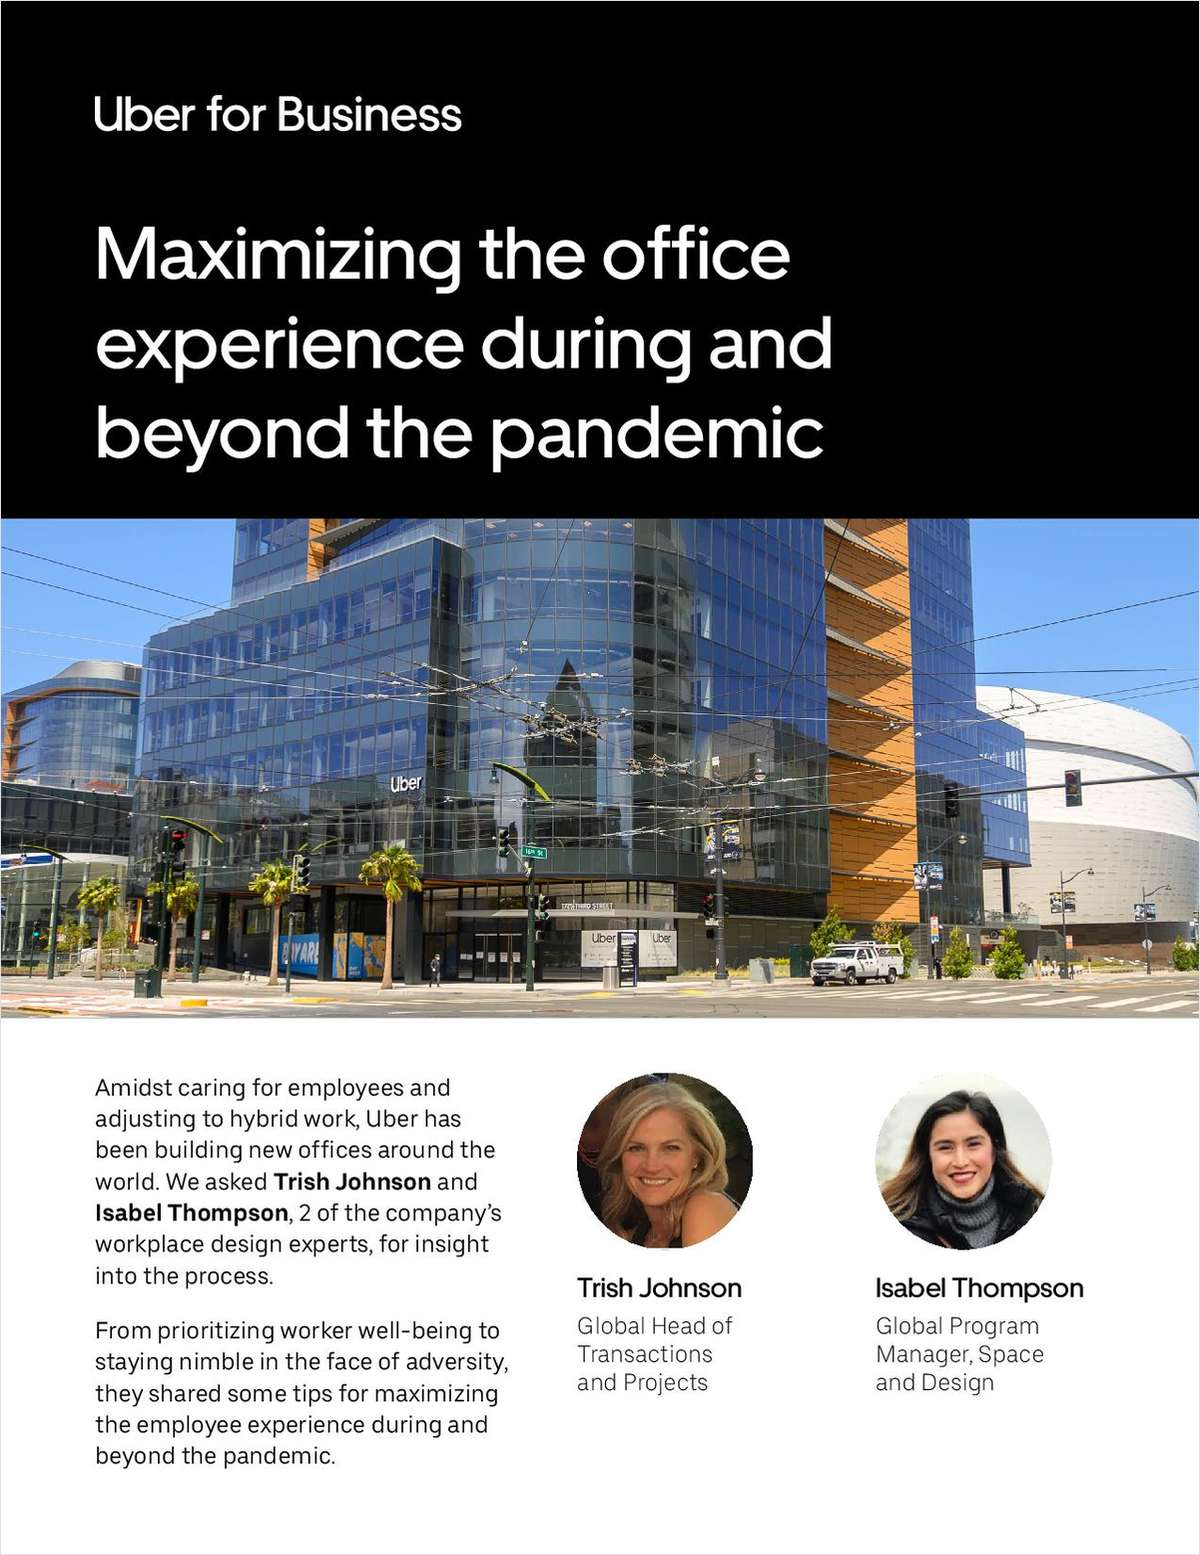 Maximizing the office experience during and beyond the pandemic